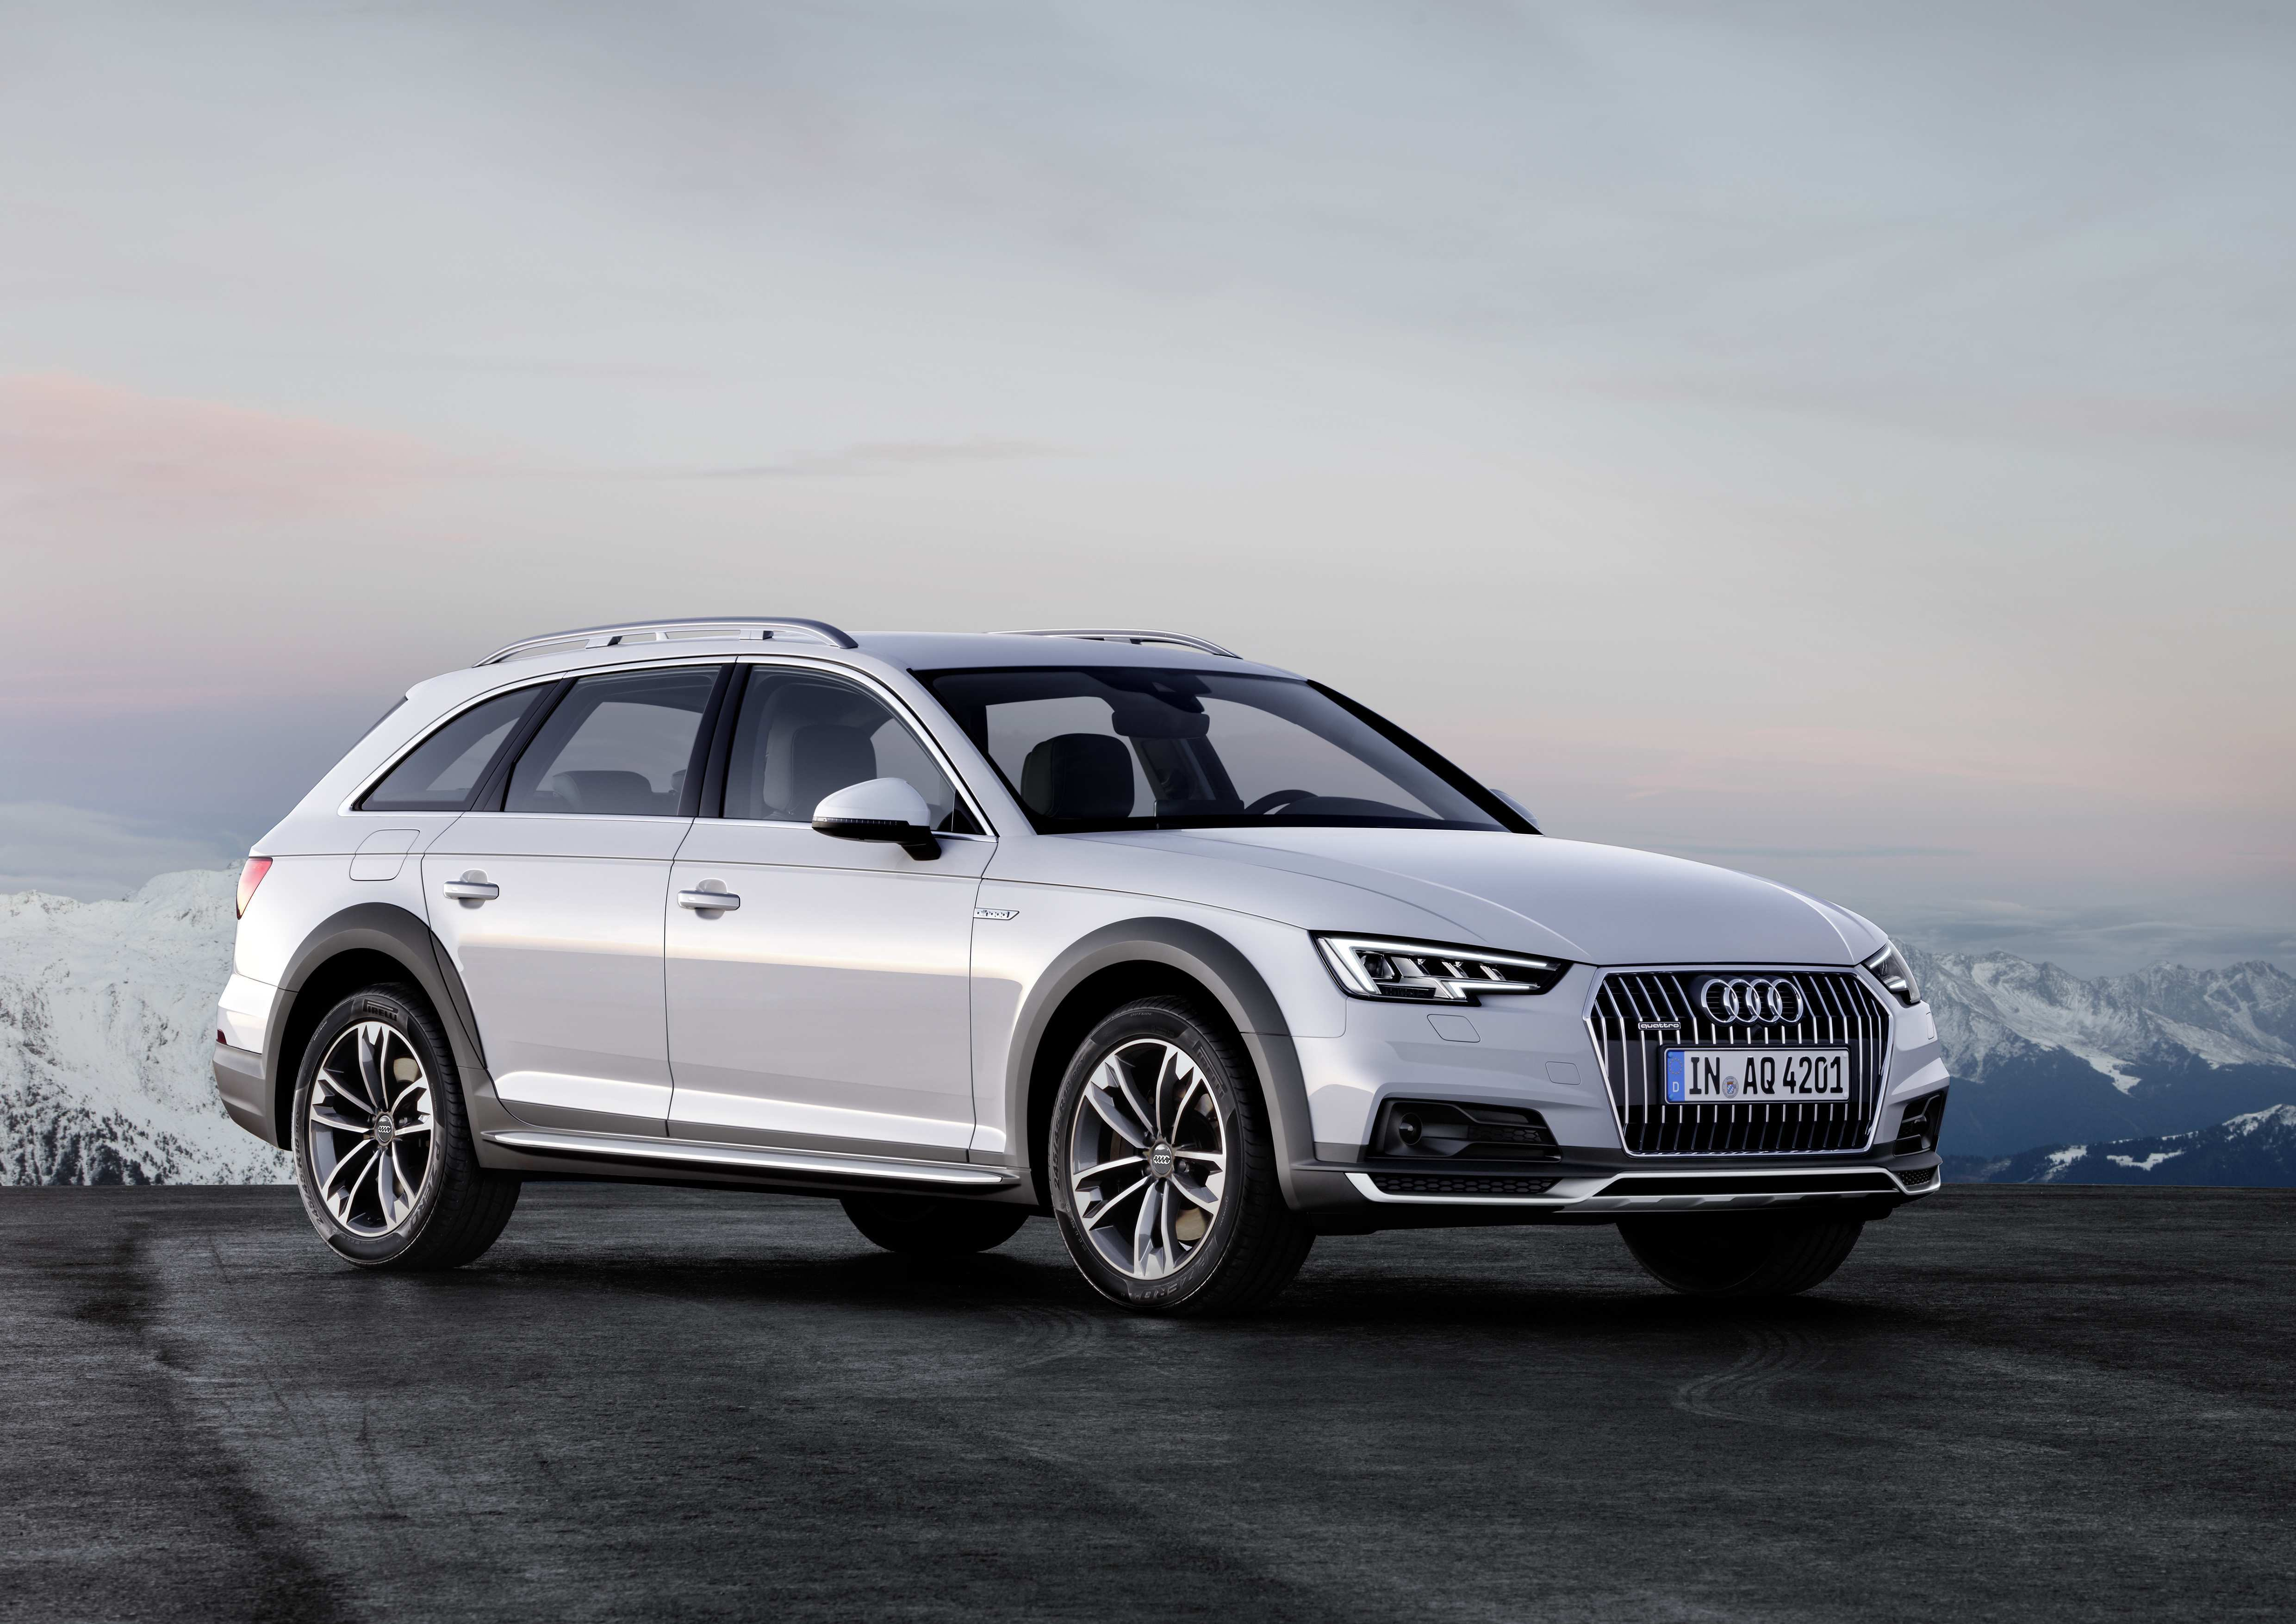 89 The 2020 Audi A6 Allroad Usa Pricing